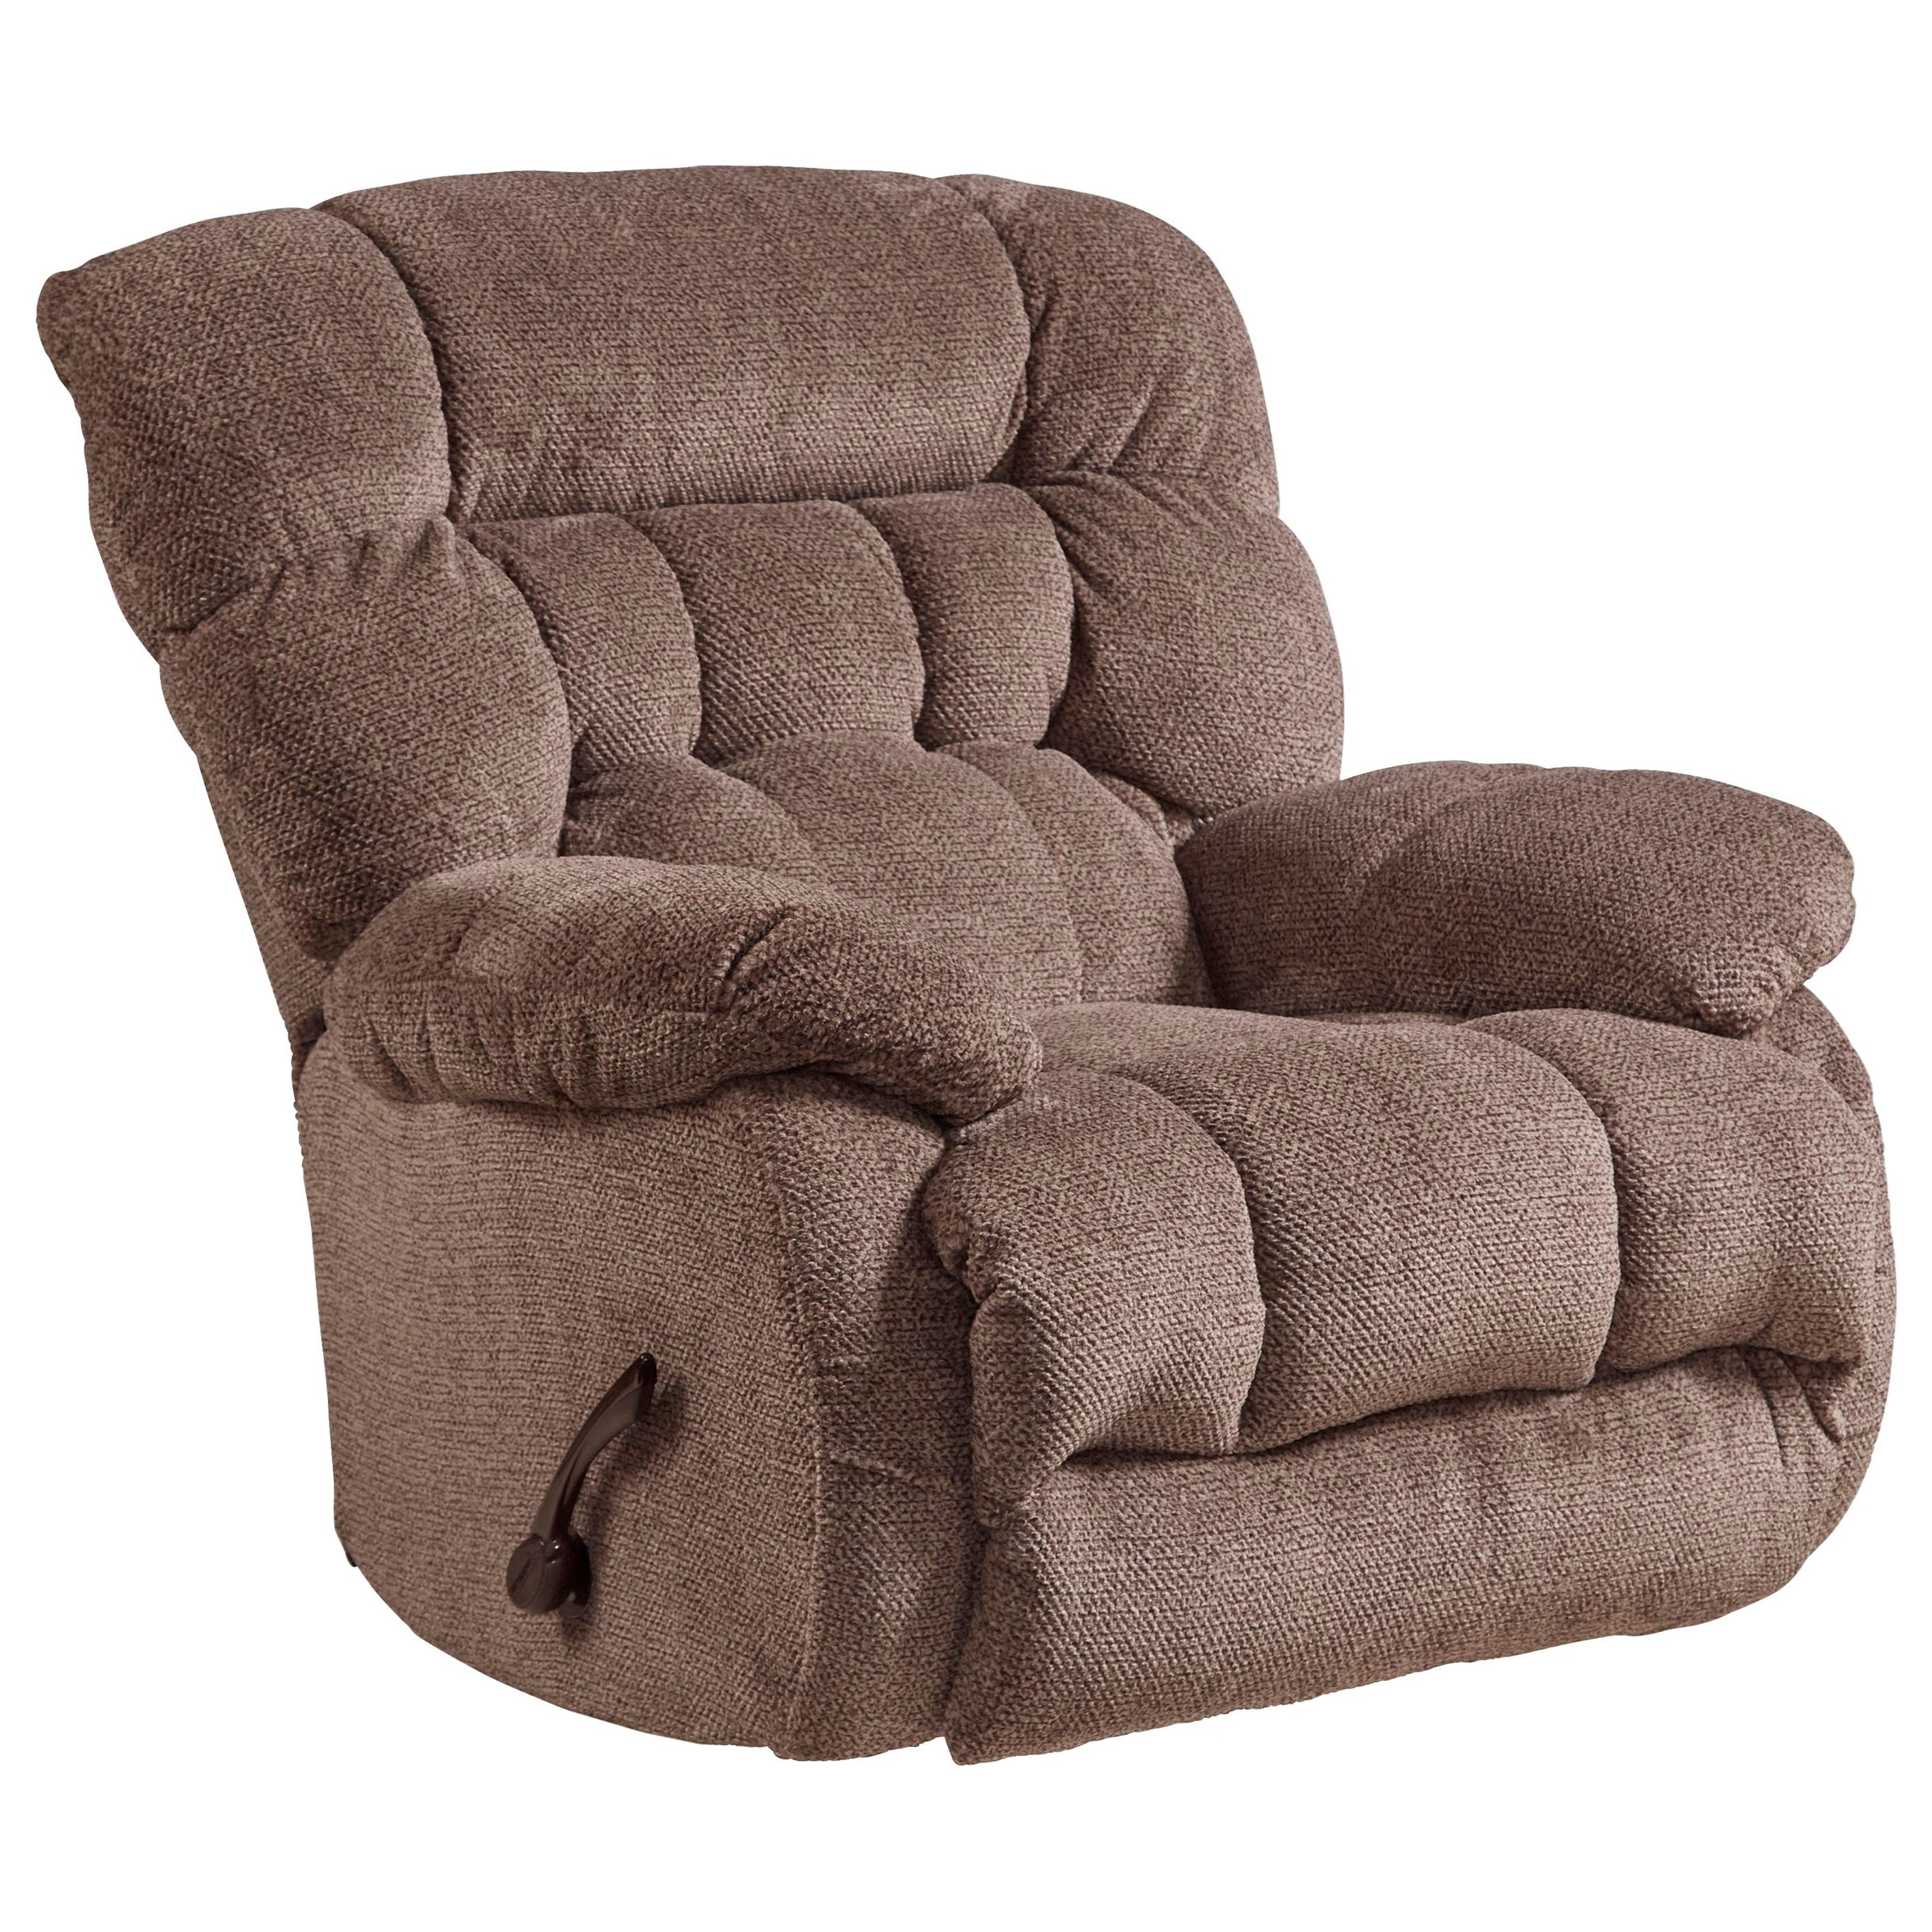 Catnapper Motion Chairs And Recliners Daly Swivel Glider Recliner Regarding Gibson Swivel Cuddler Chairs (Photo 5 of 20)